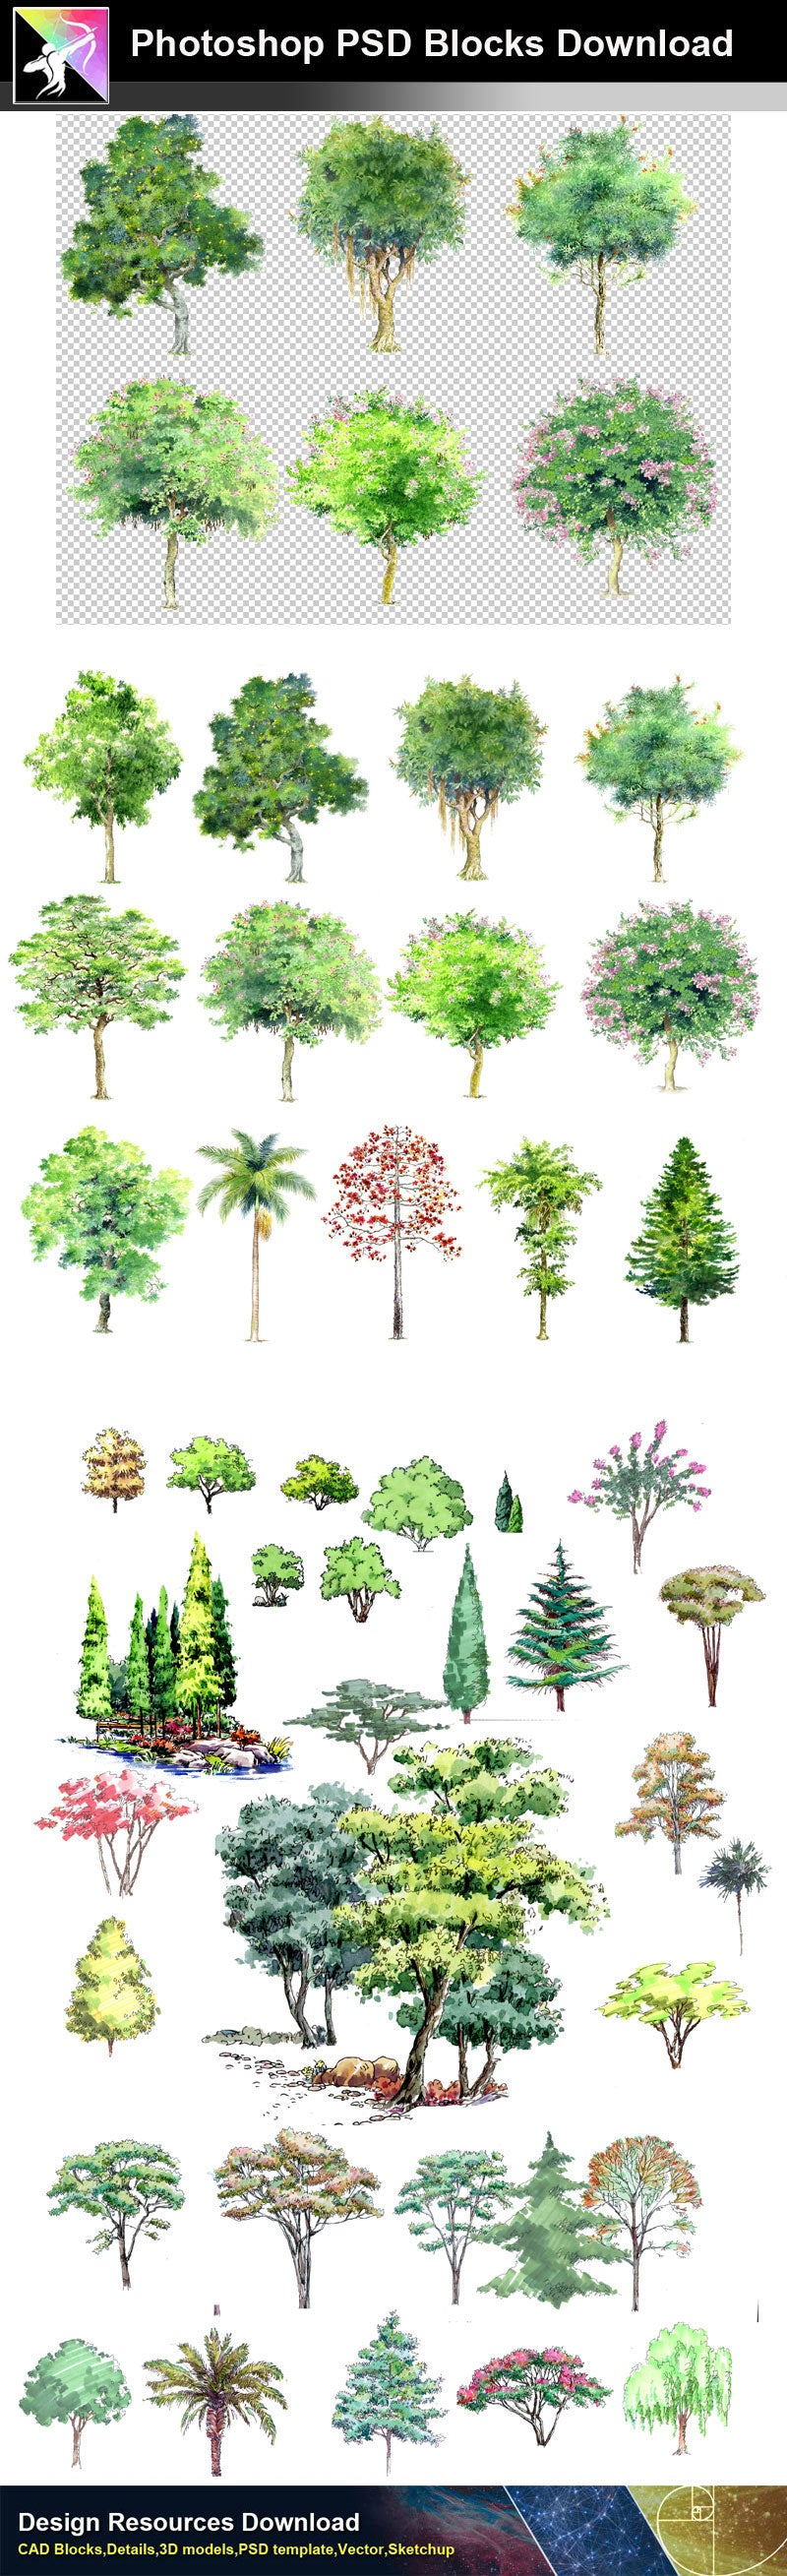 【Photoshop PSD Landscape Blocks】Hand-painted Tree Blocks